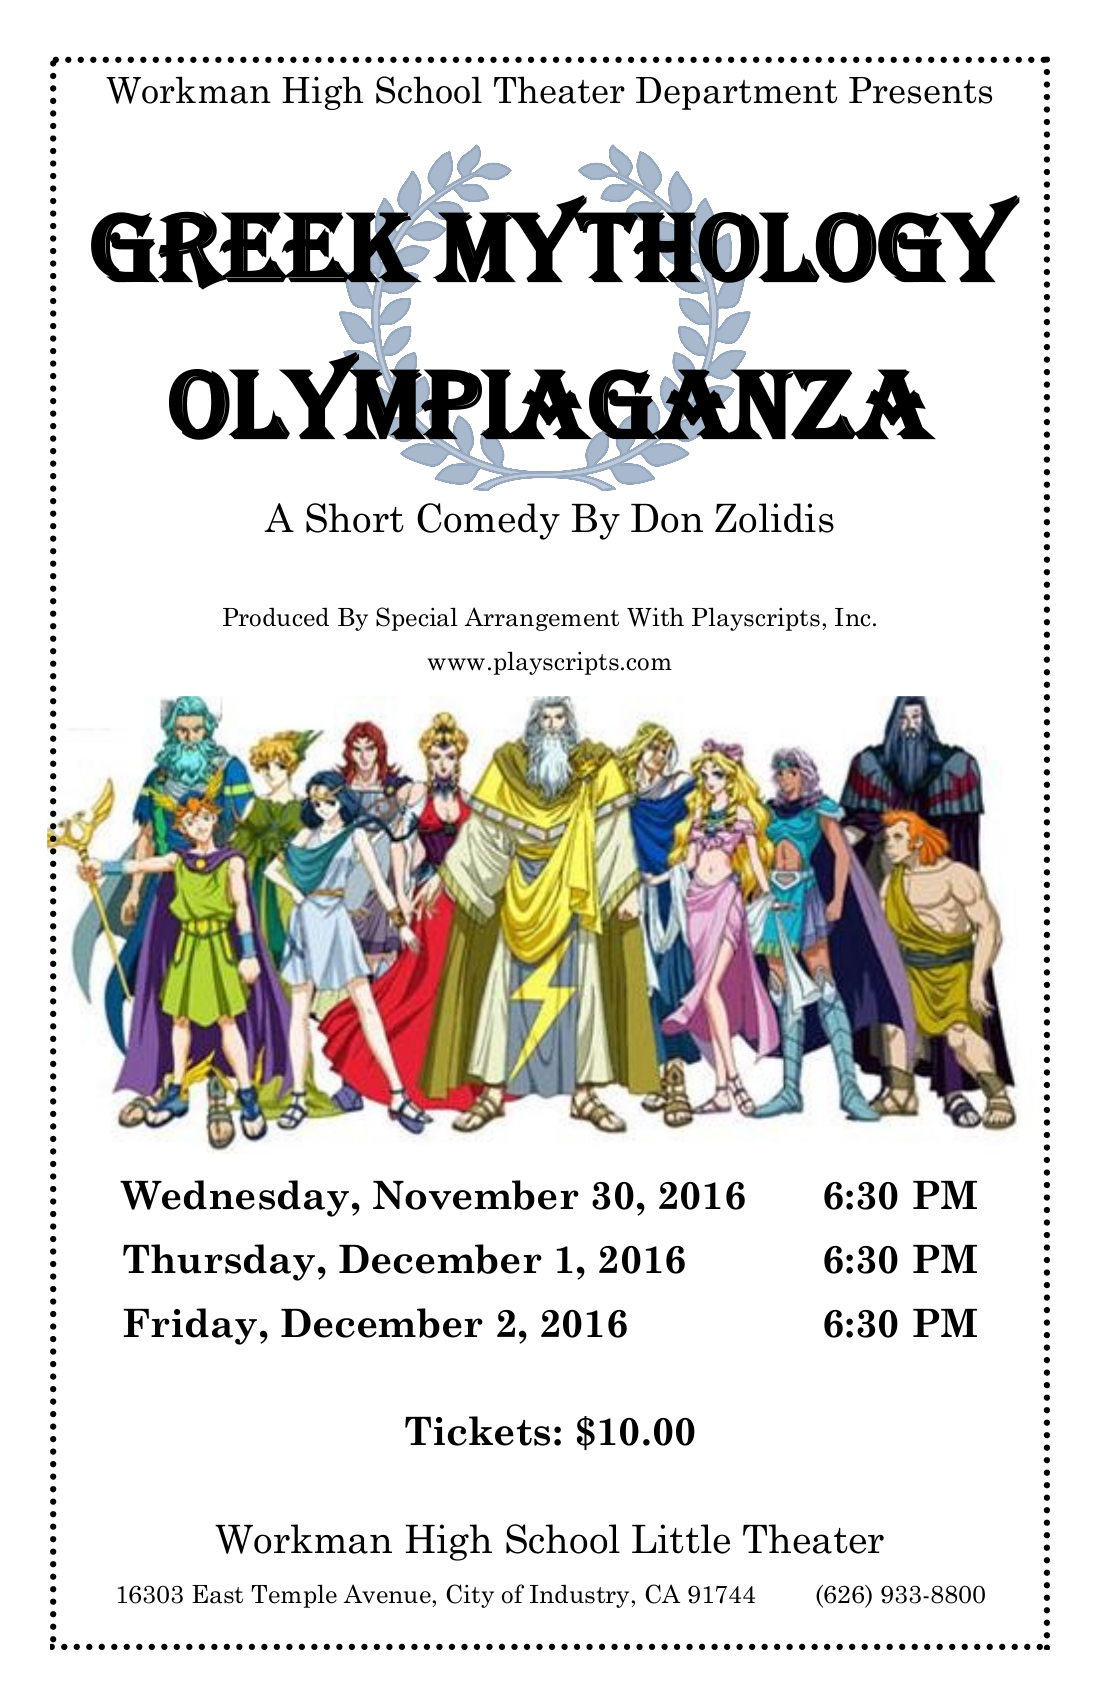 Workman High School Theater Presents Greek Mythology Olympiaganza